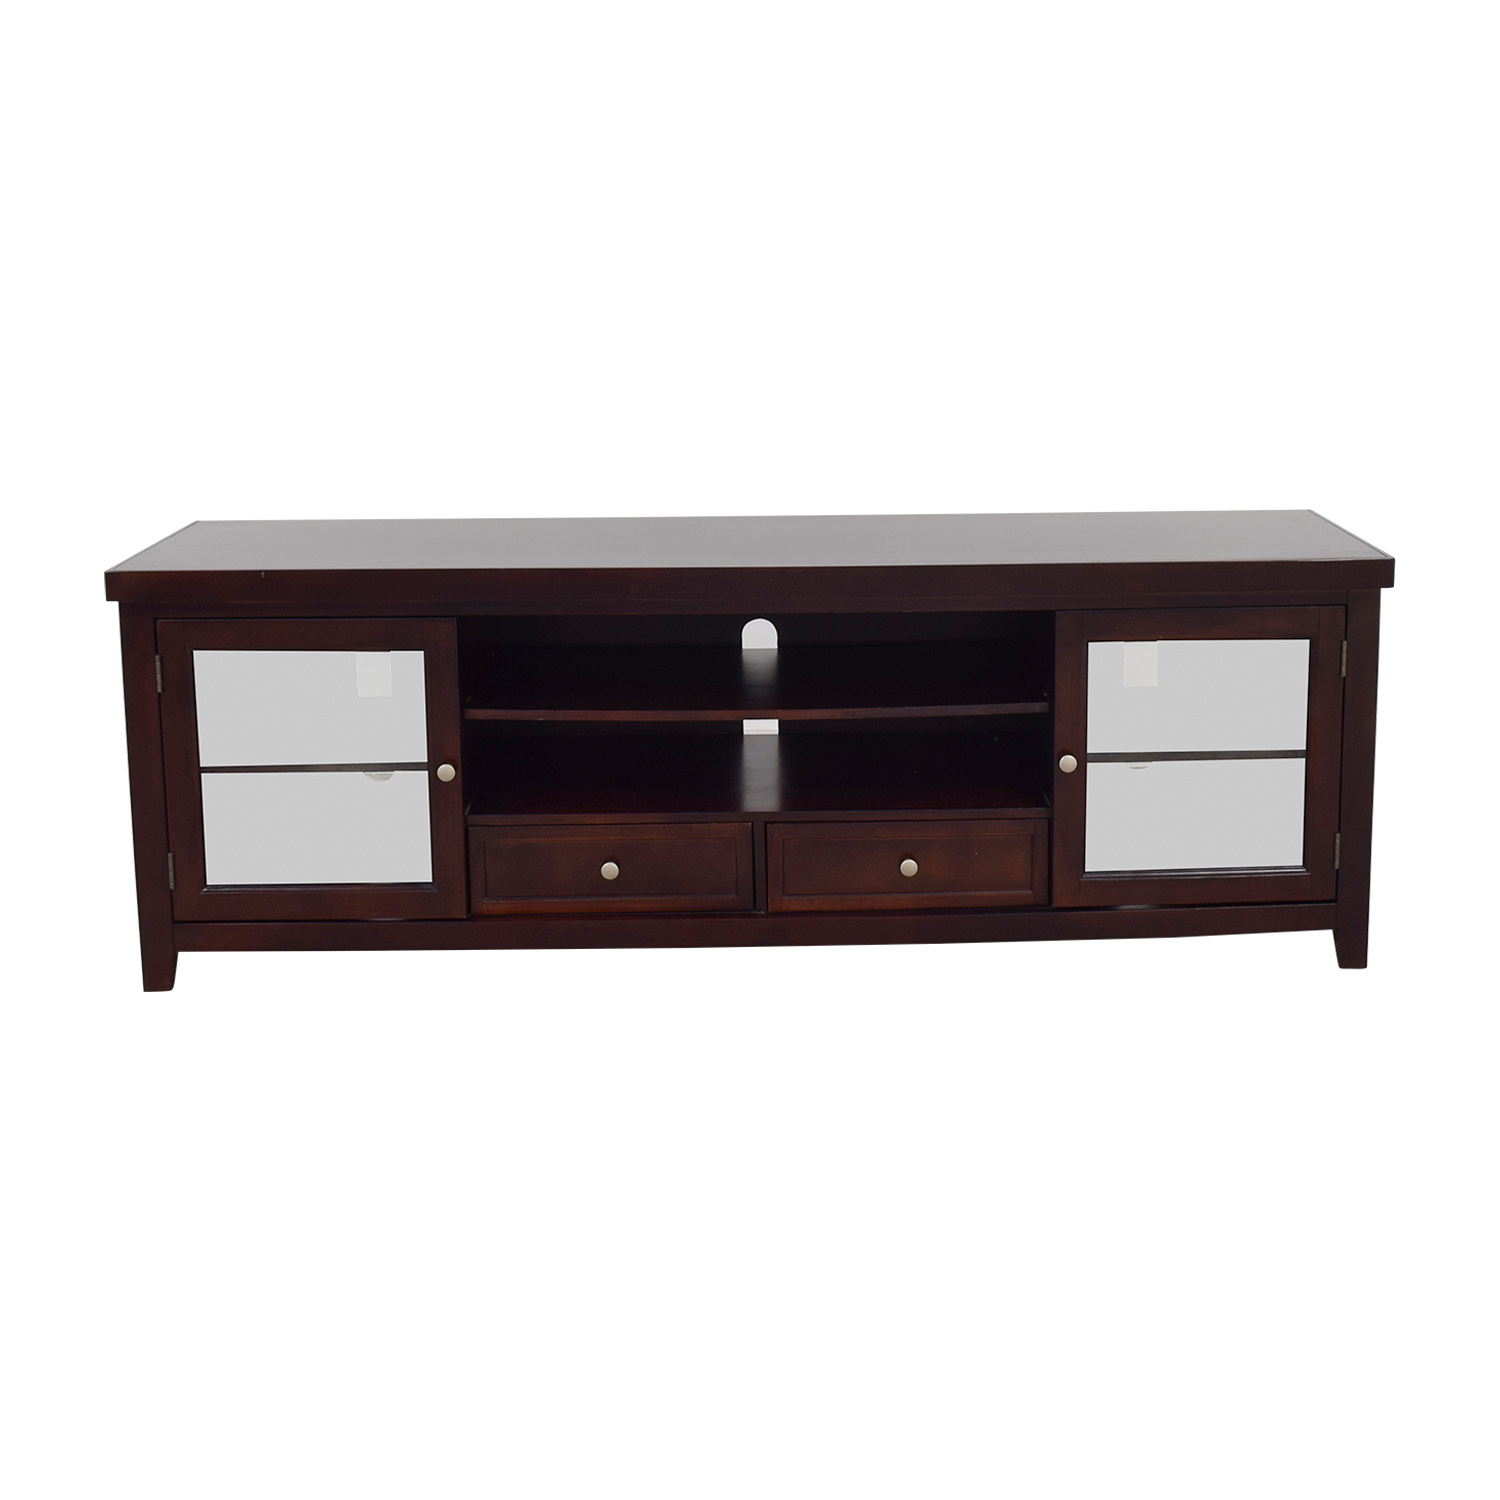 Living Spaces Living Spaces Wood and Glass TV Stand brown